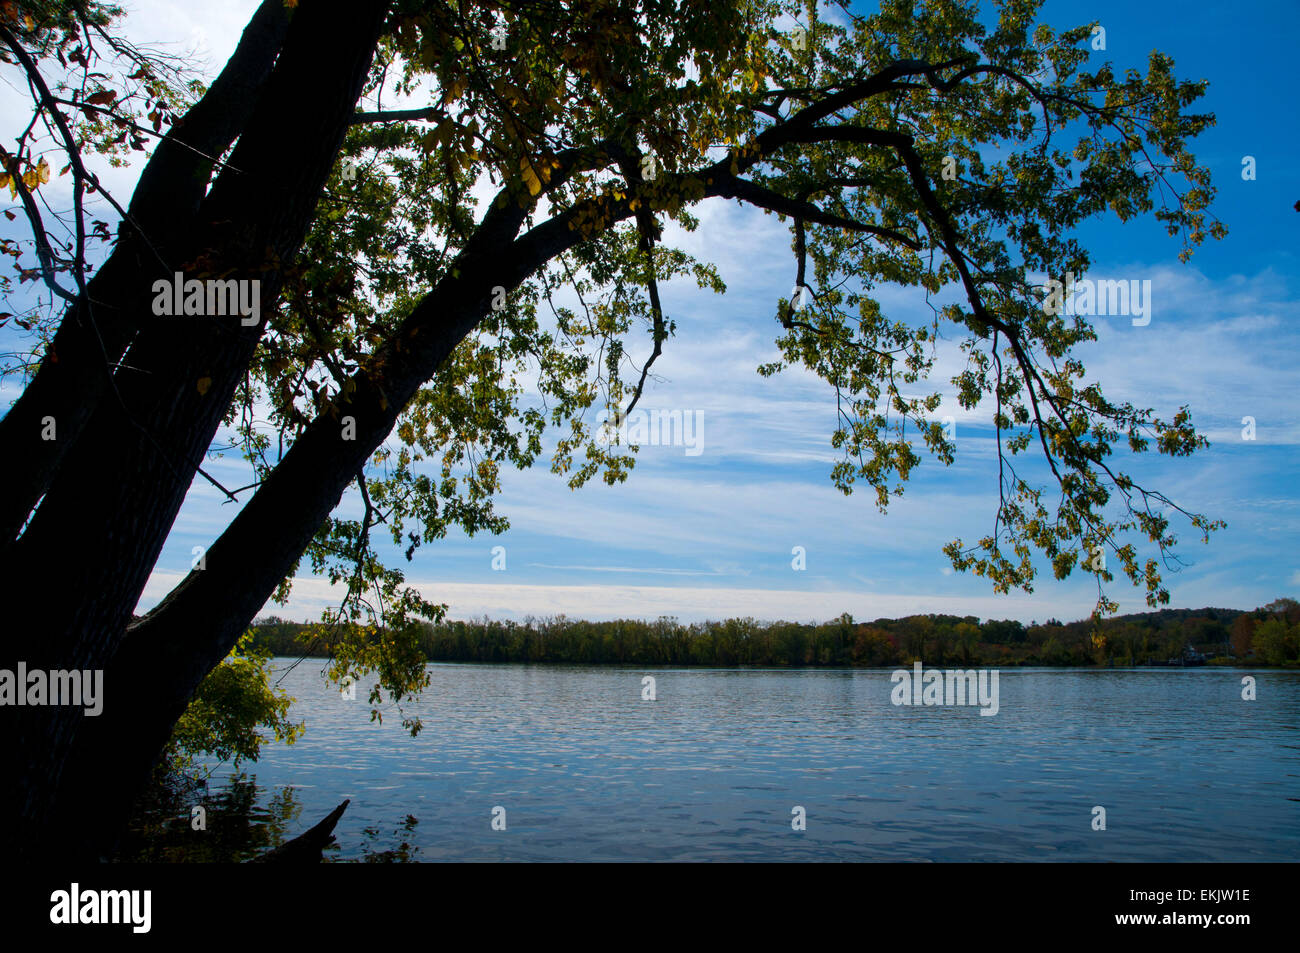 Connecticut River, Gillette Castle State Park, Connecticut - Stock Image